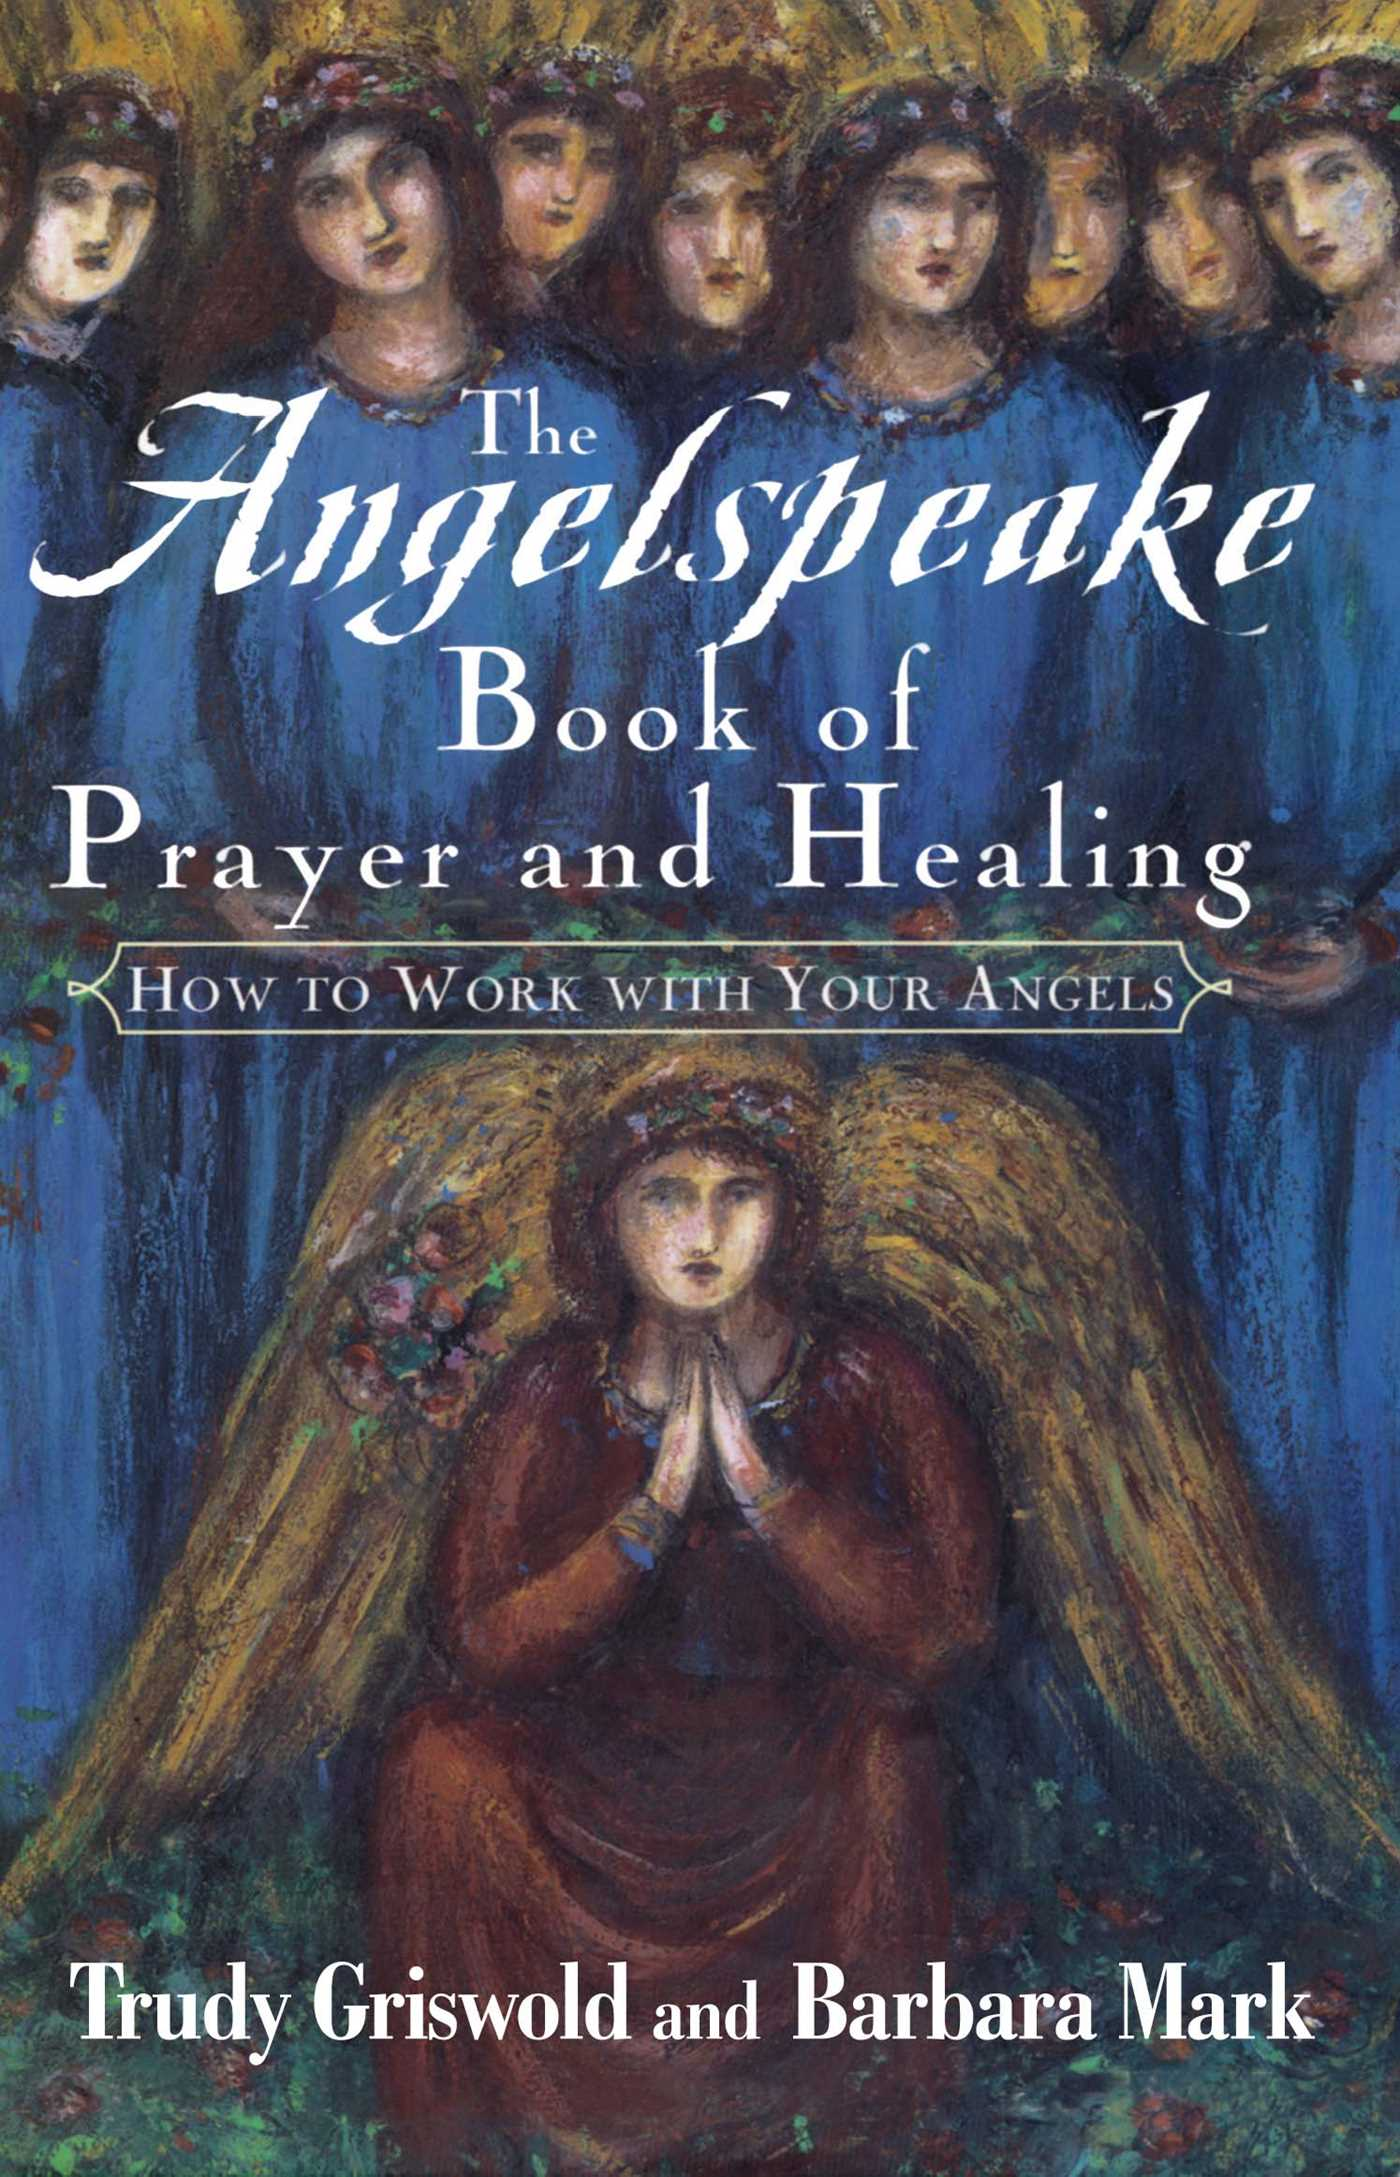 Angelspeake-book-of-prayer-and-healing-9781439191064_hr